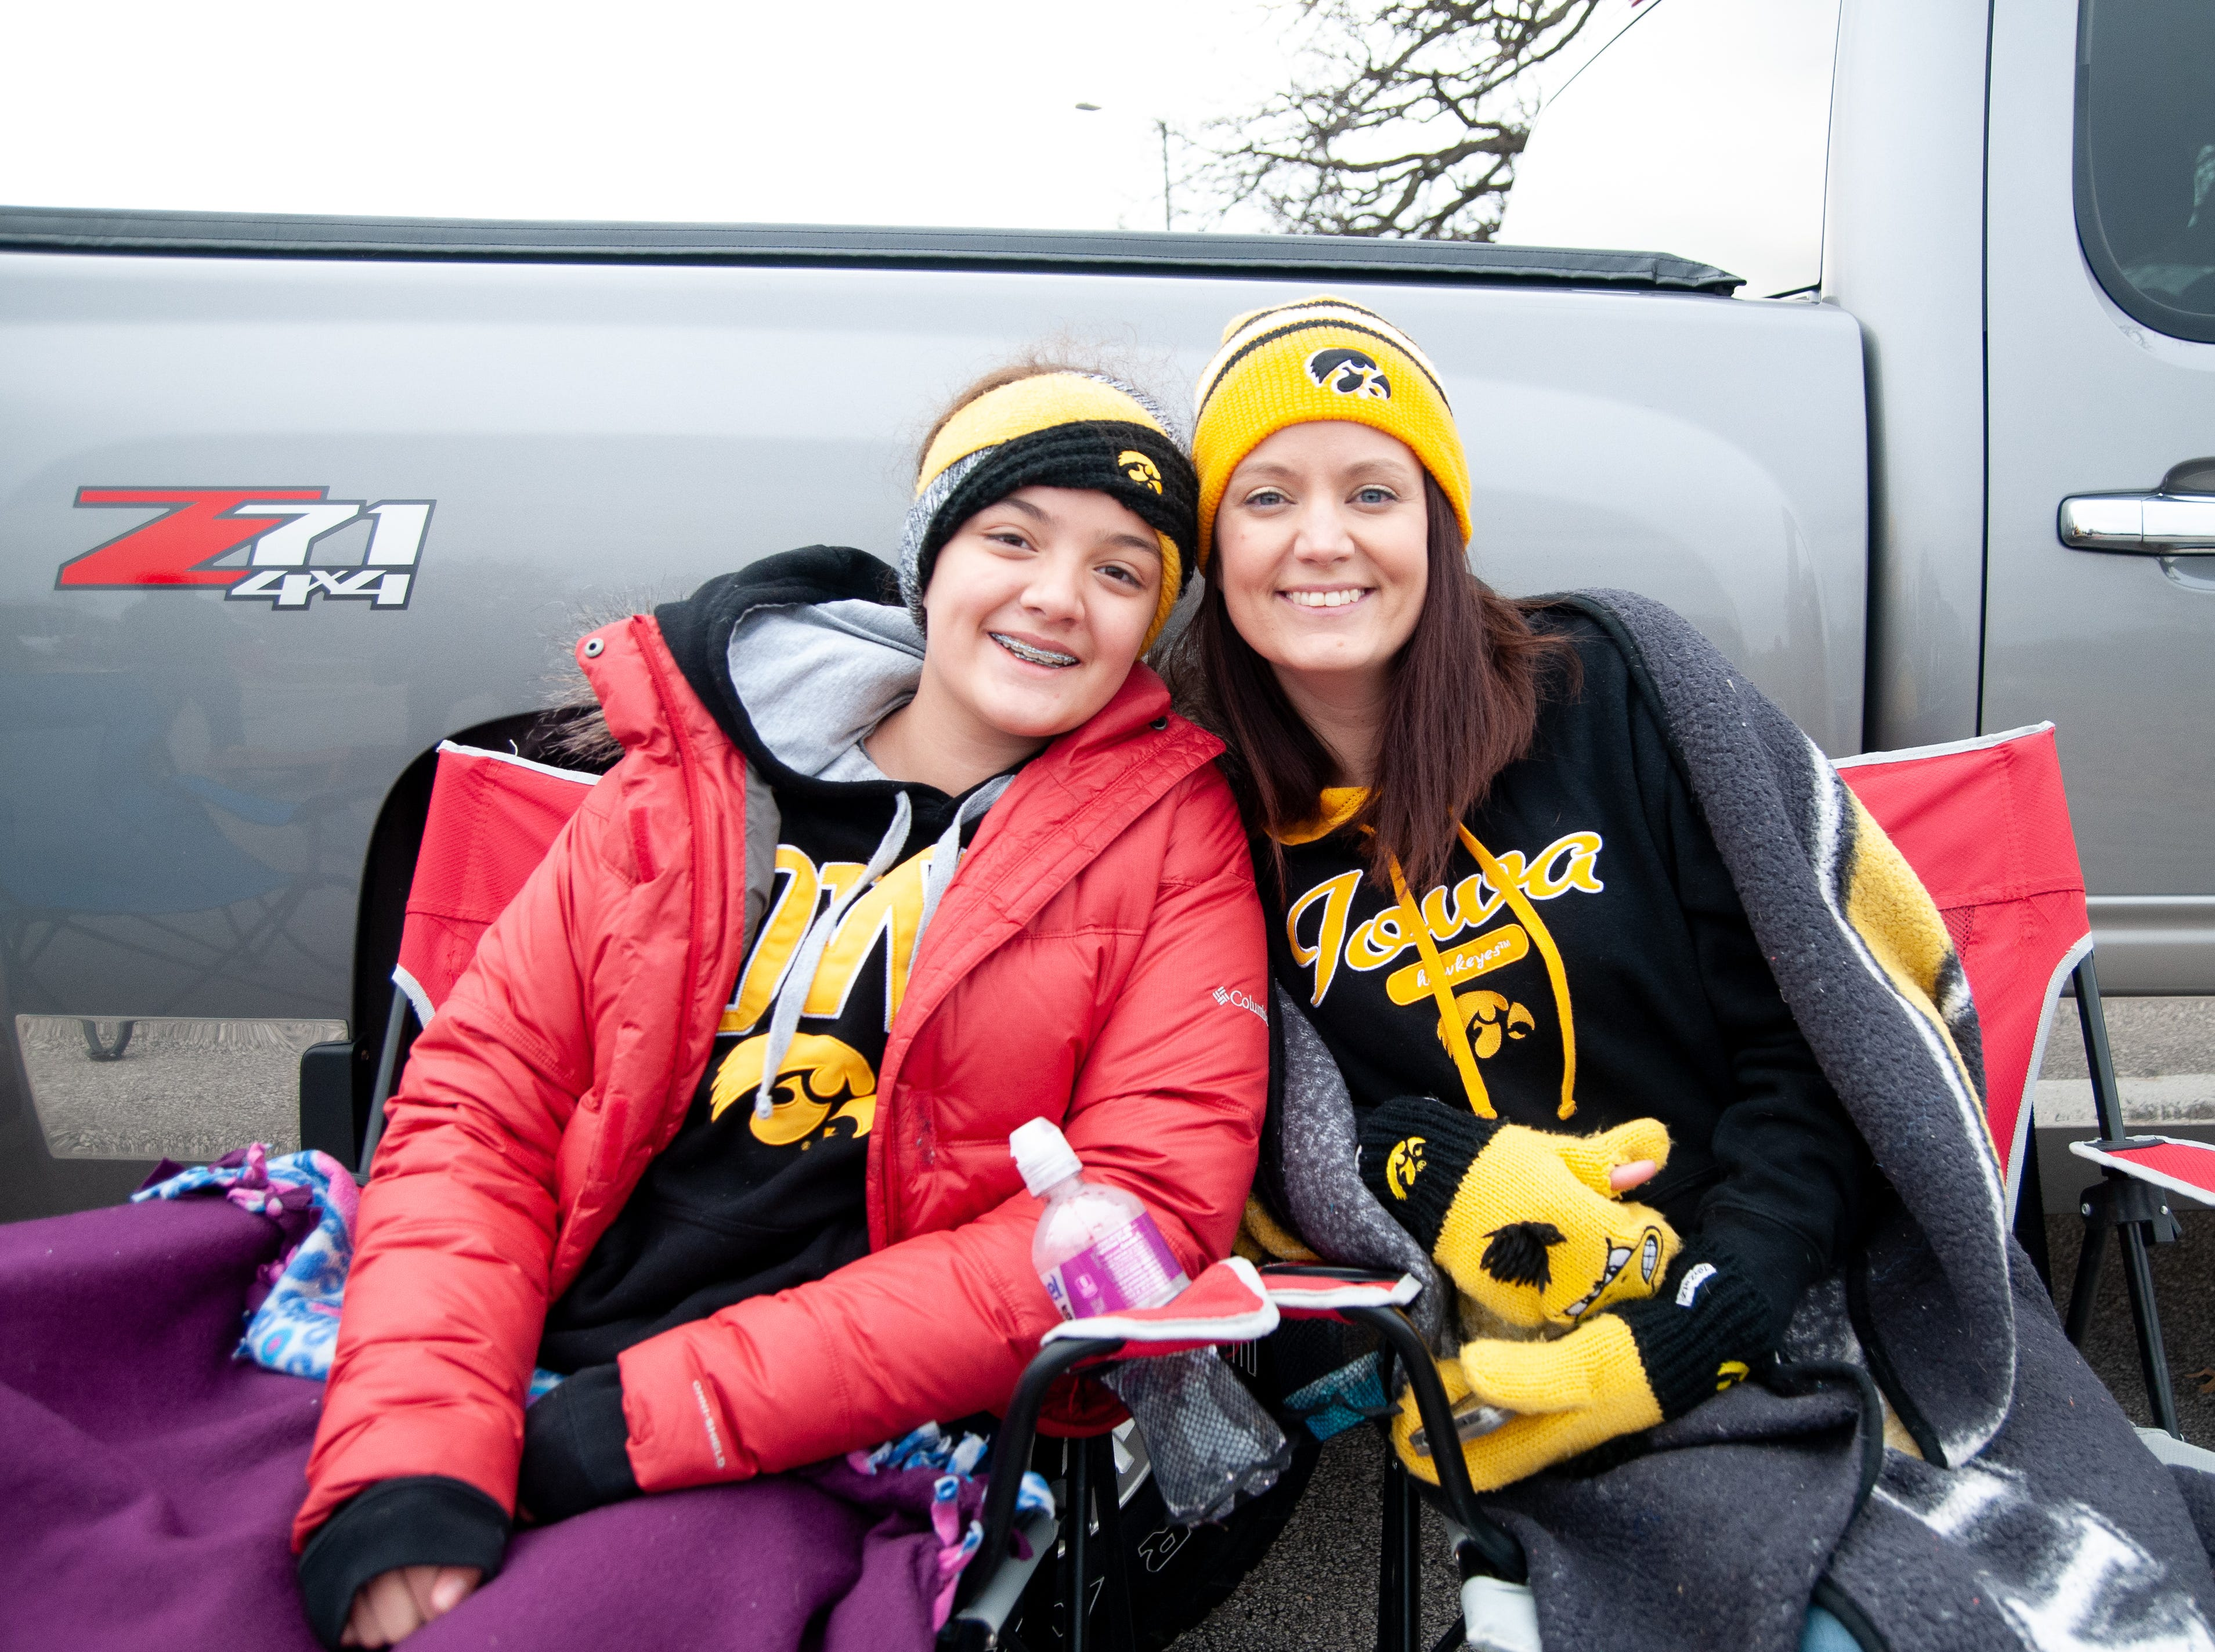 Sonia, left, and Andrea Taylor, of Des Moines, Friday, Nov. 23, 2018, while tailgating before the Iowa game against Nebraska in Iowa City.